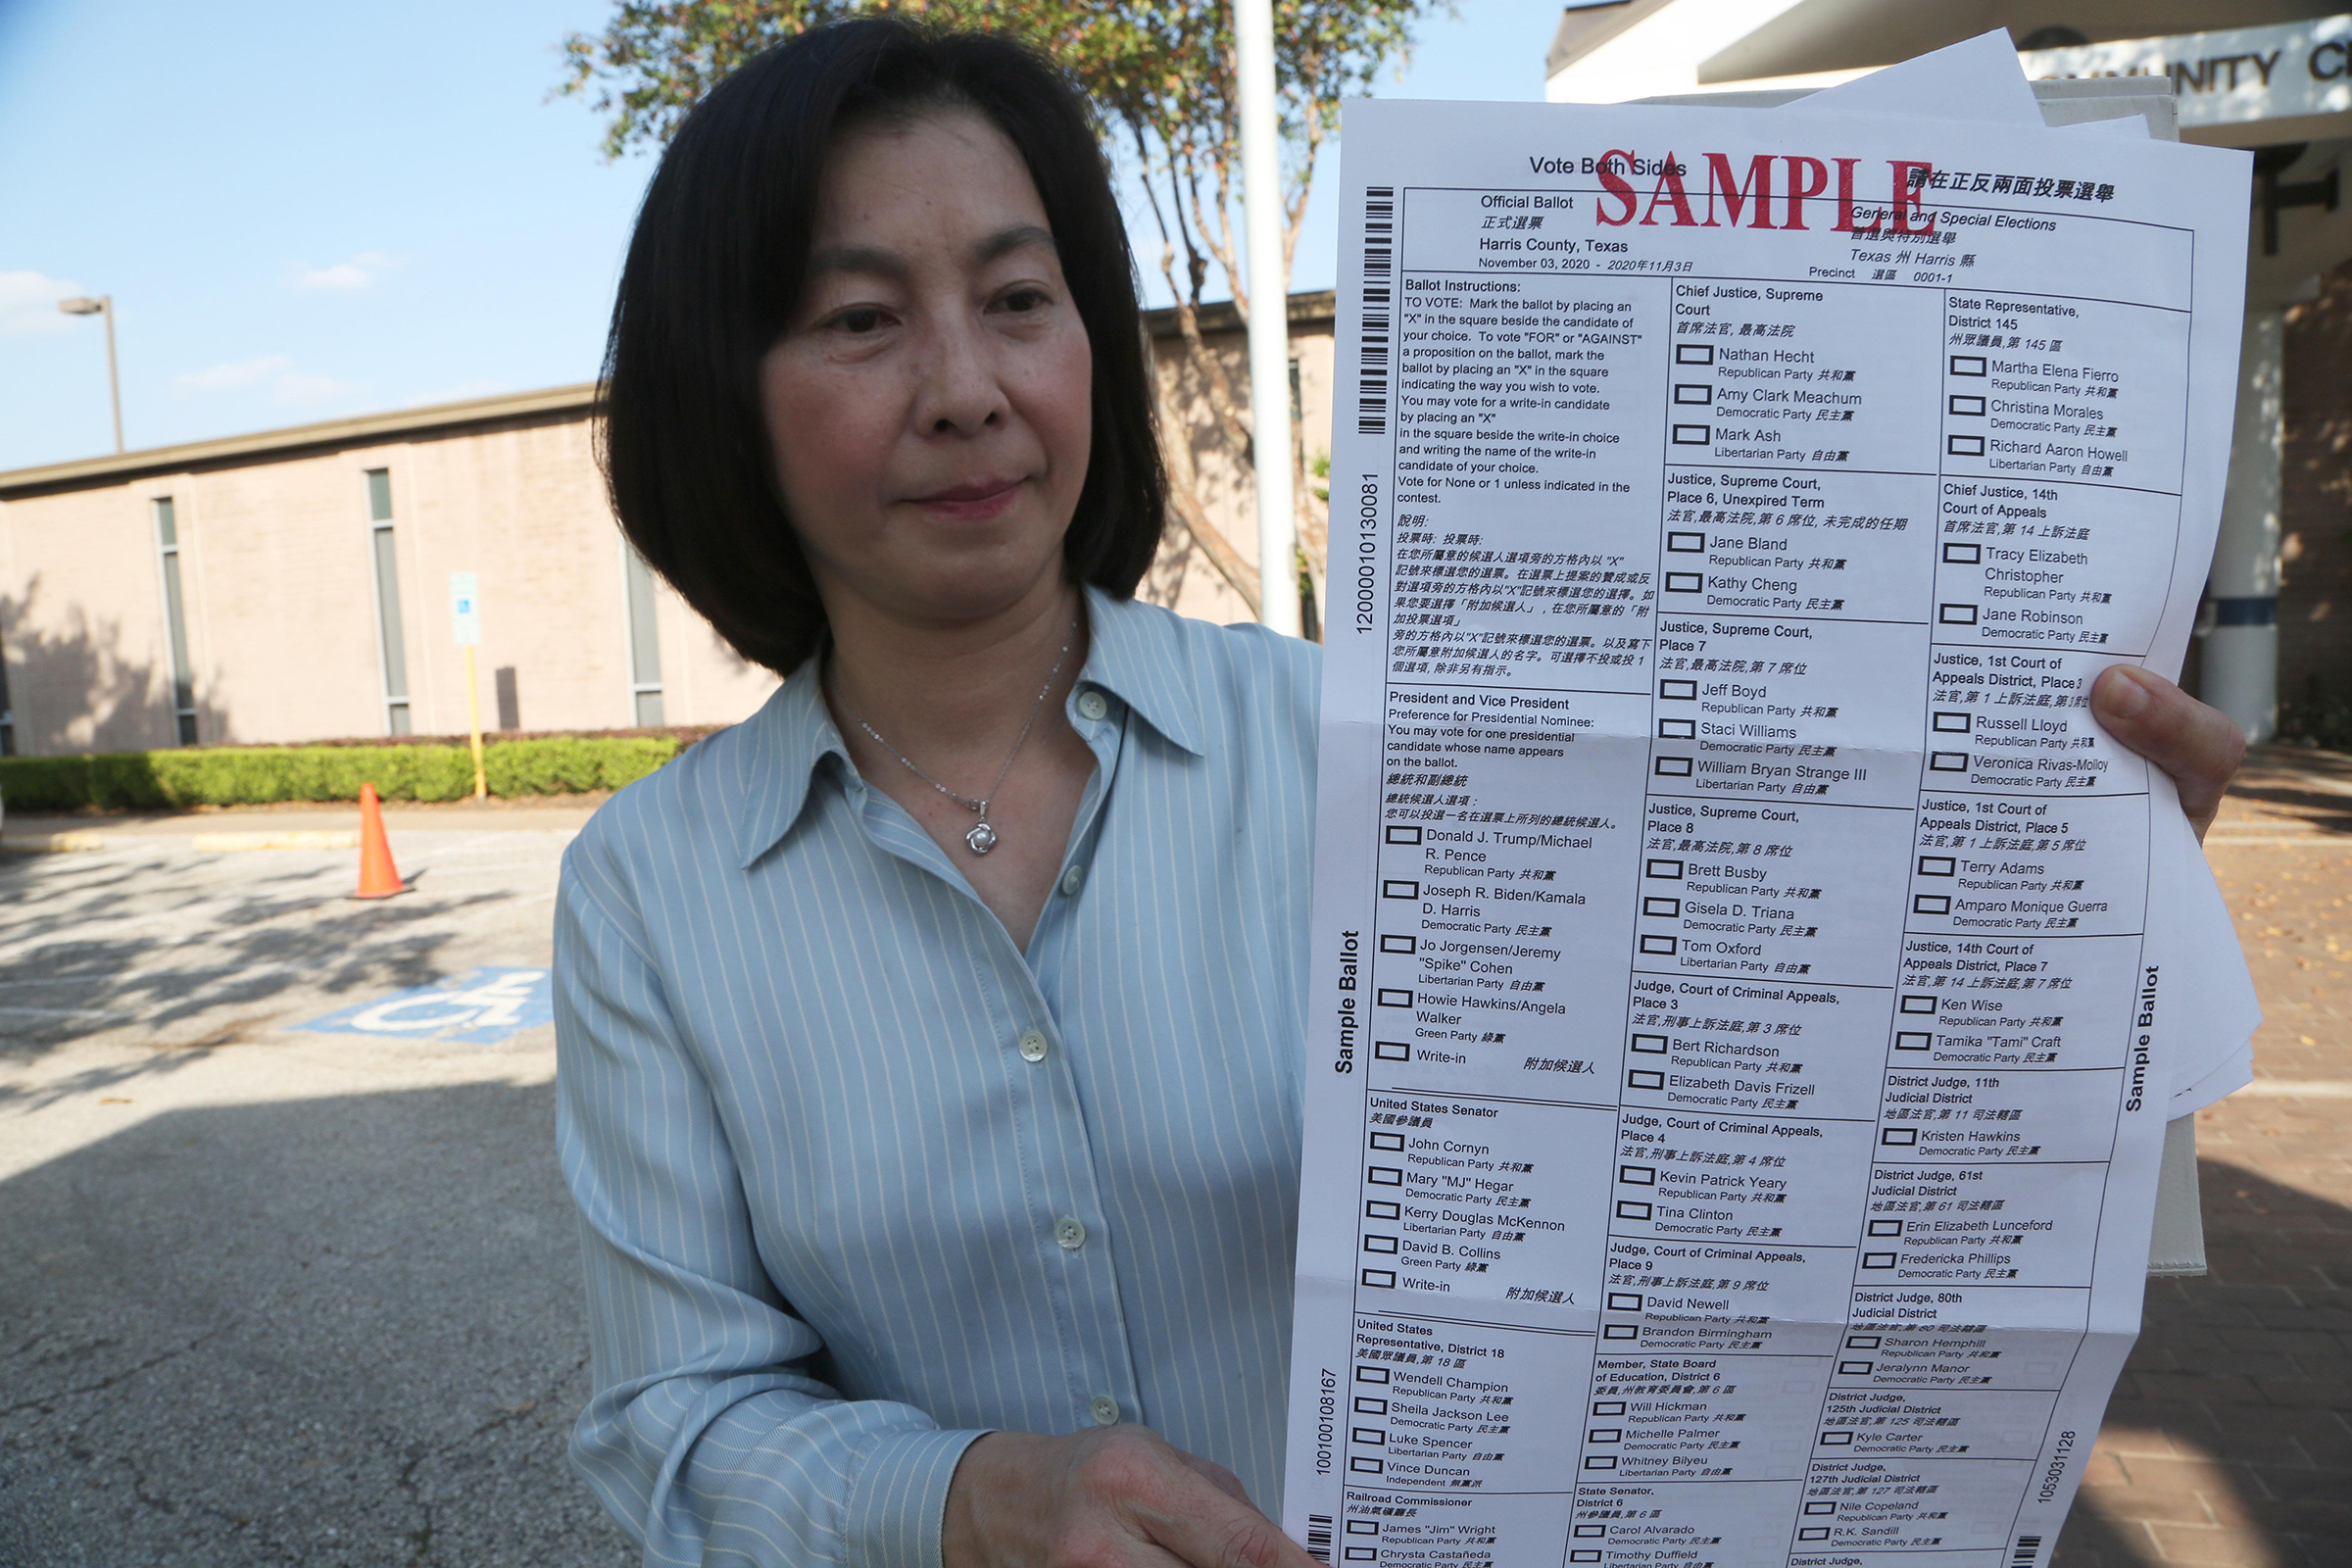 A woman presents a Chinese ballot sample for the 2020 presidential election at a polling station near Chinatown on Oct. 14 in Houston